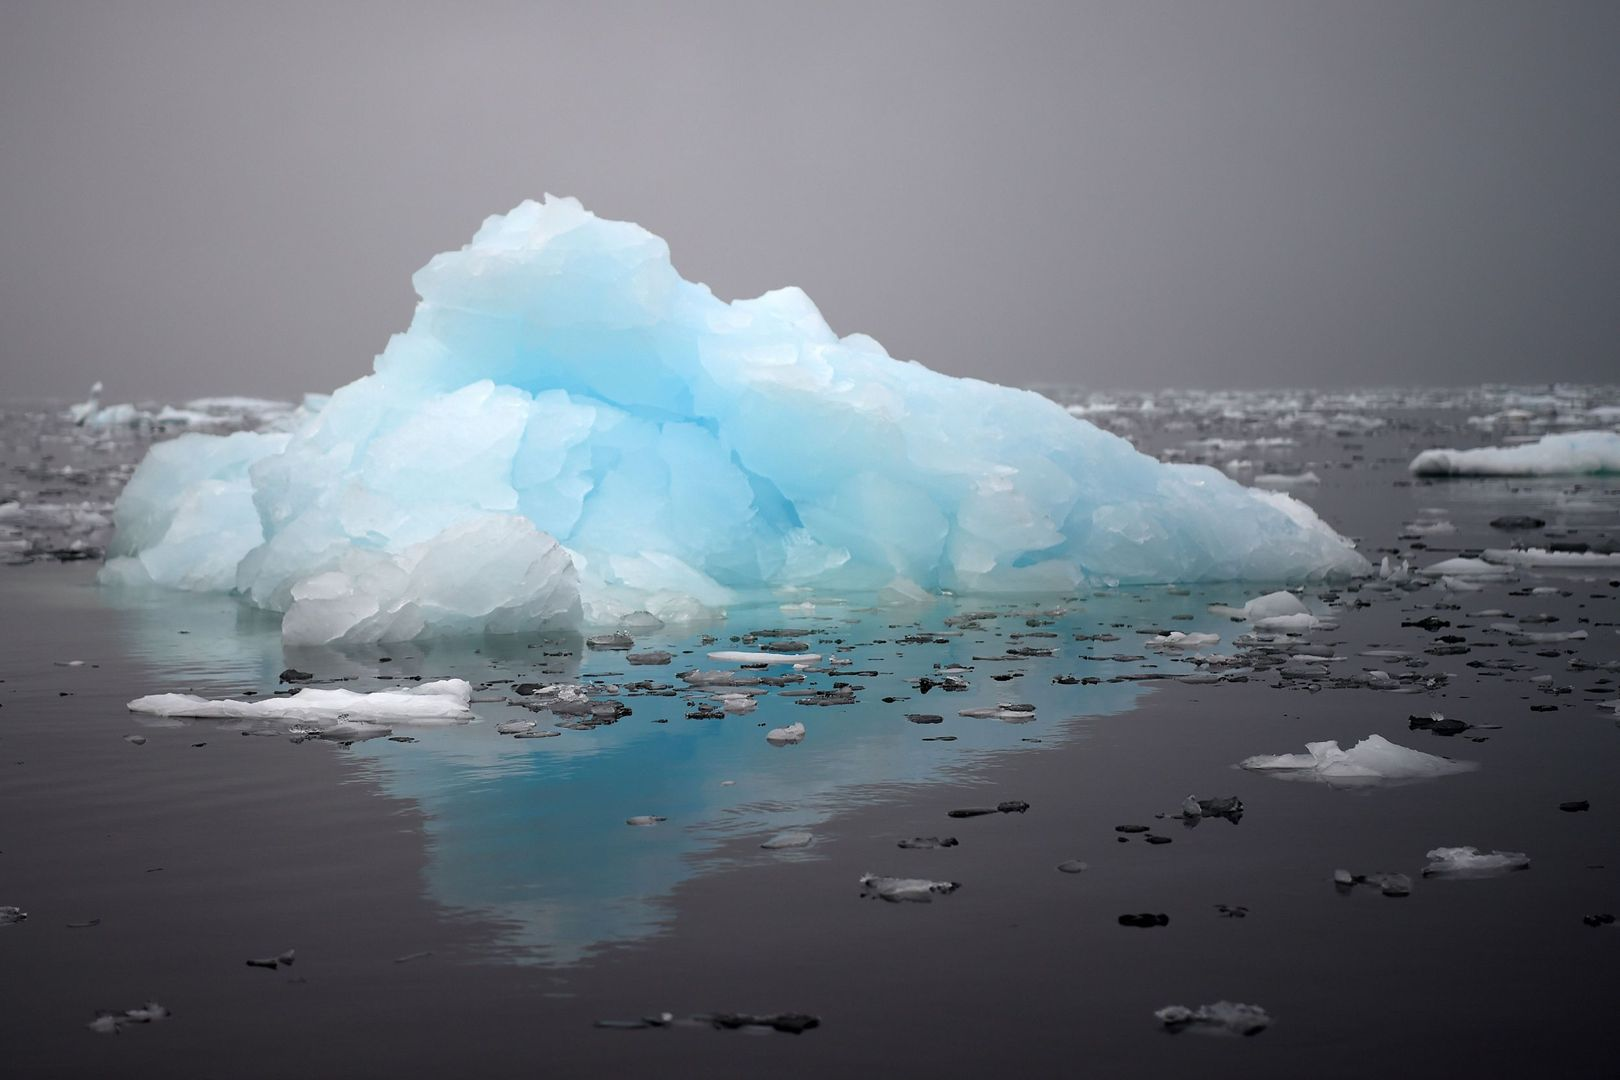 Climate change data is being transformed into beautiful, haunting symphonies - ARTICLE